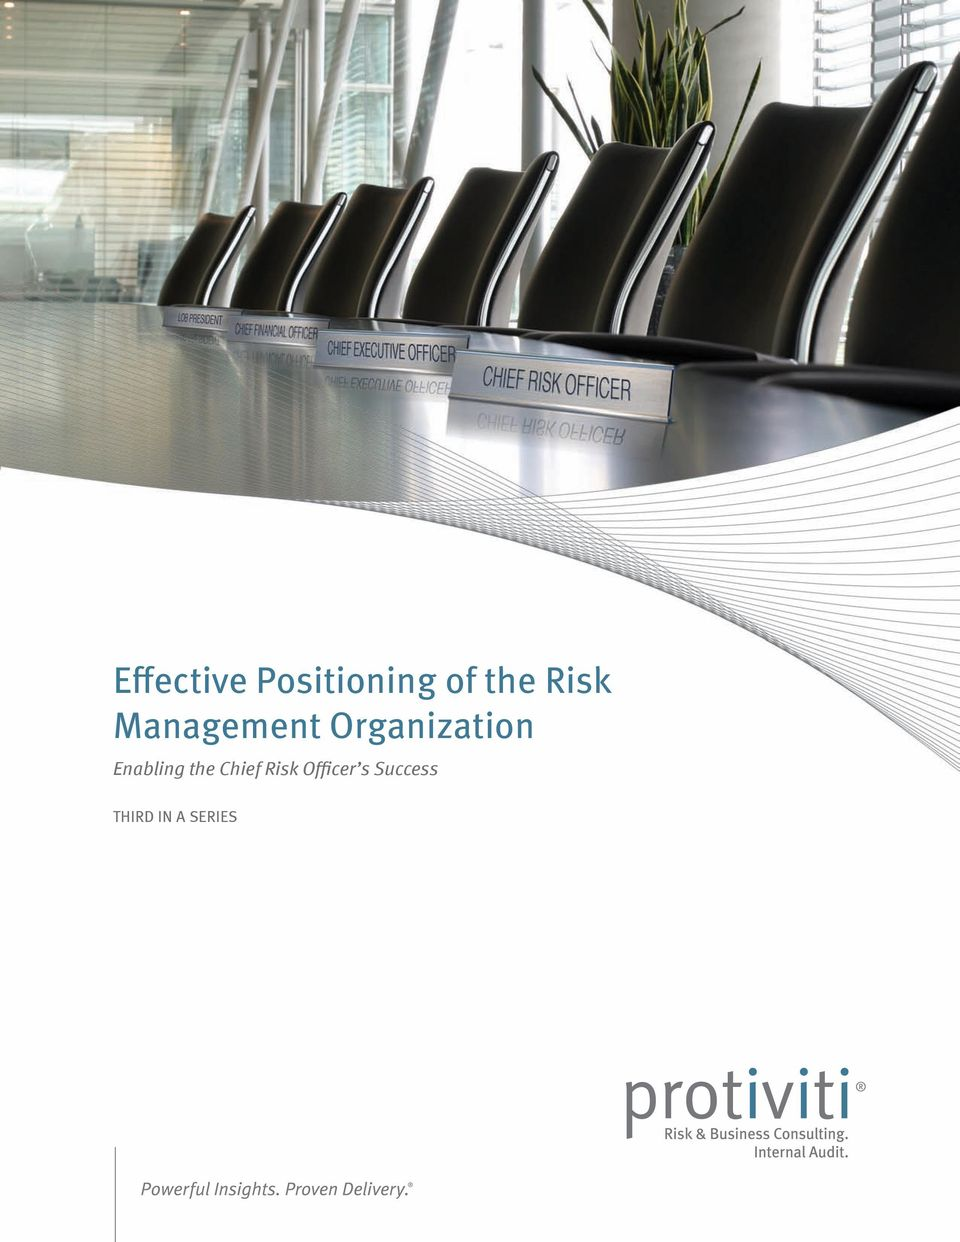 Enabling the Chief Risk